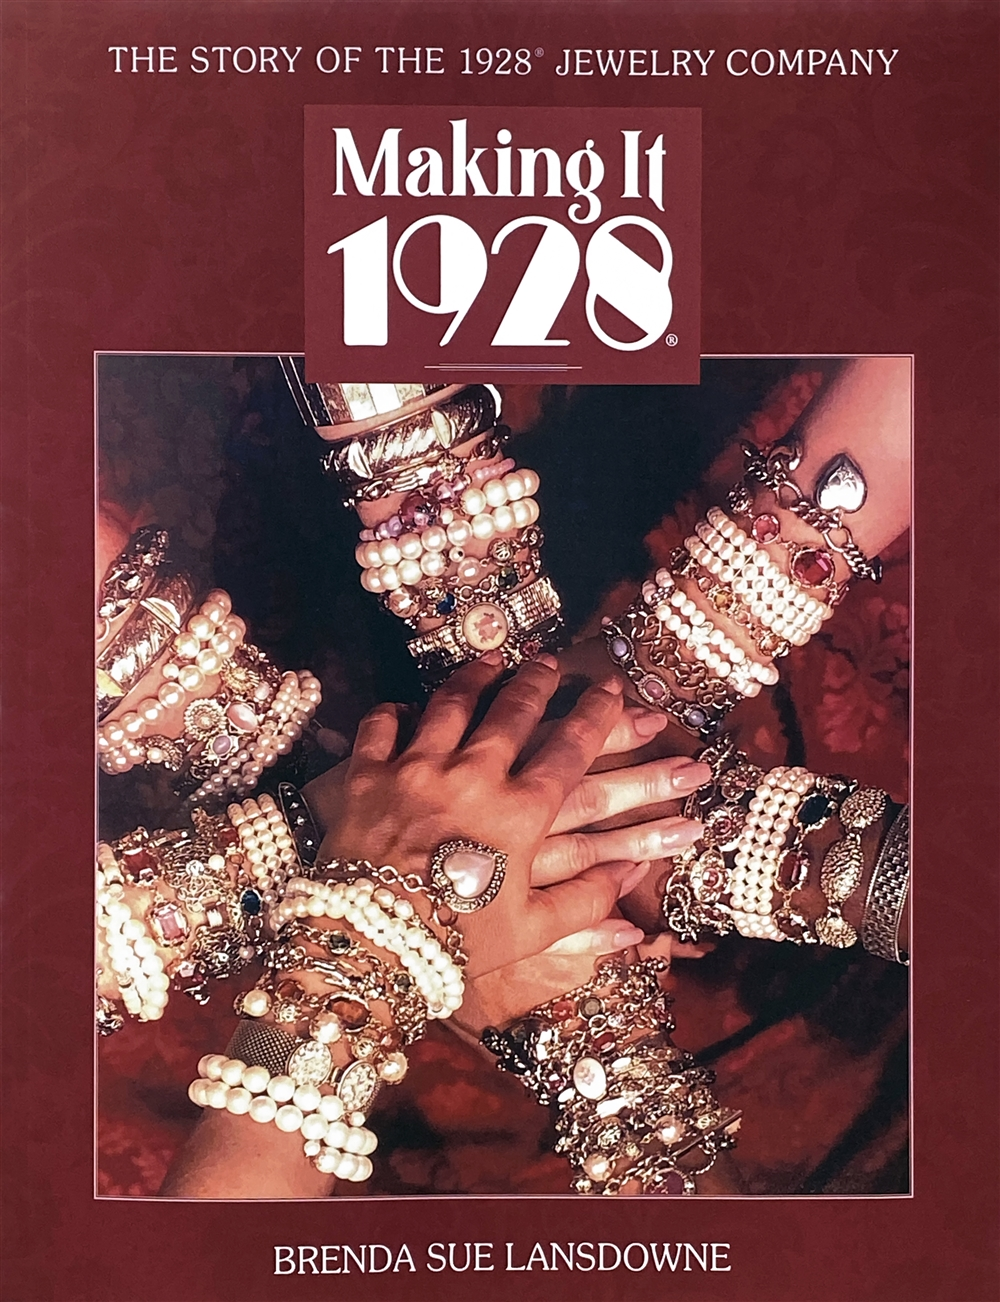 Making It 1928, Story of the 1928 Jewelry Company, jewelry designer, how to build a brand, making a jewelry business, B'sue Boutiques, how to design jewelry, how costume jewelry is made, collectable costume jewelry, vintage jewelry, collecting jewelry